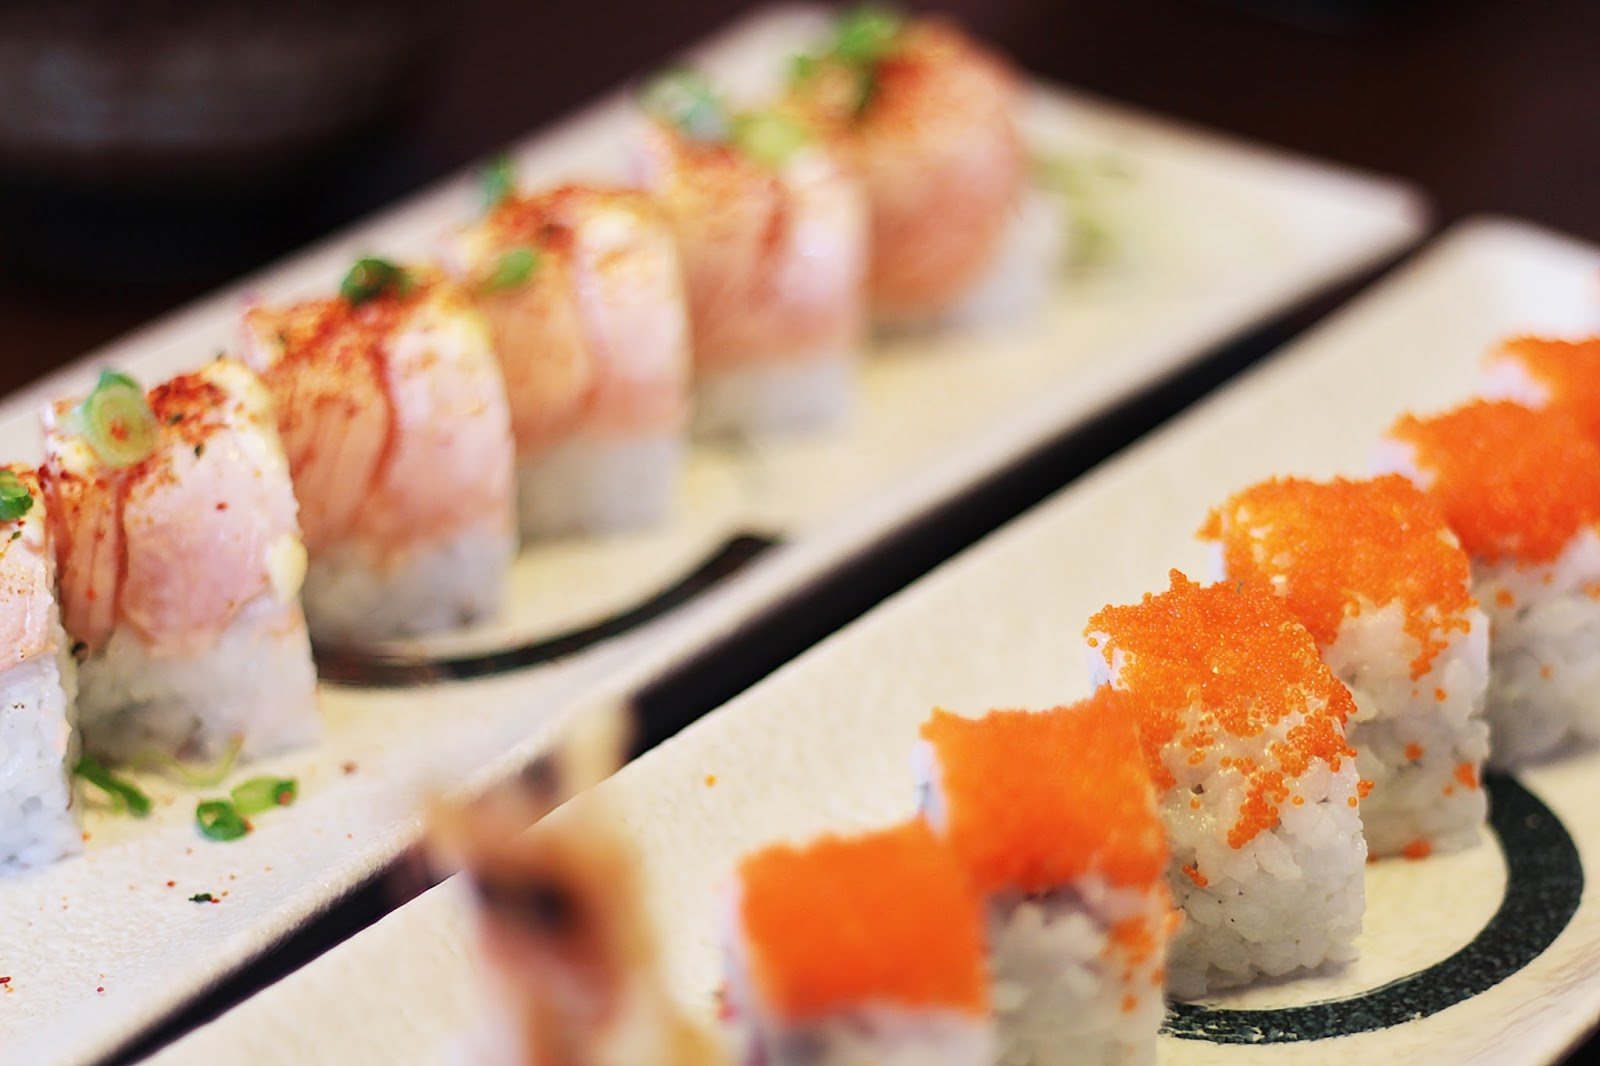 want to know where to get the best sushi in sheffield? you too can enjoy this wonderful maki if you head to sushi express